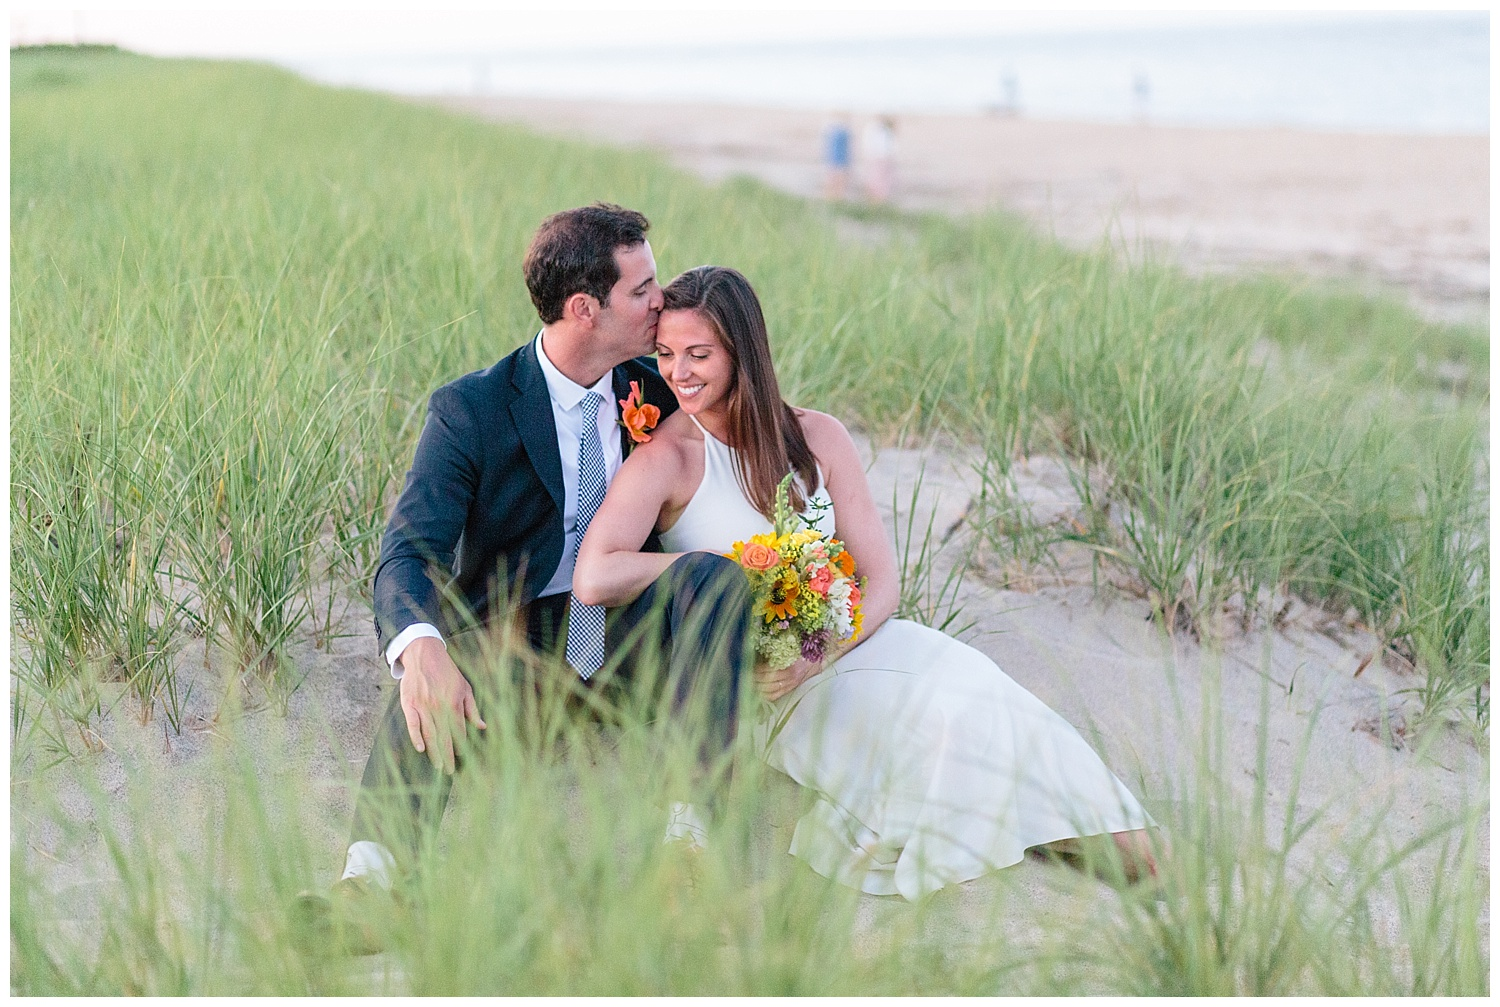 emily-belson-photography-nantucket-elopement-65.jpg